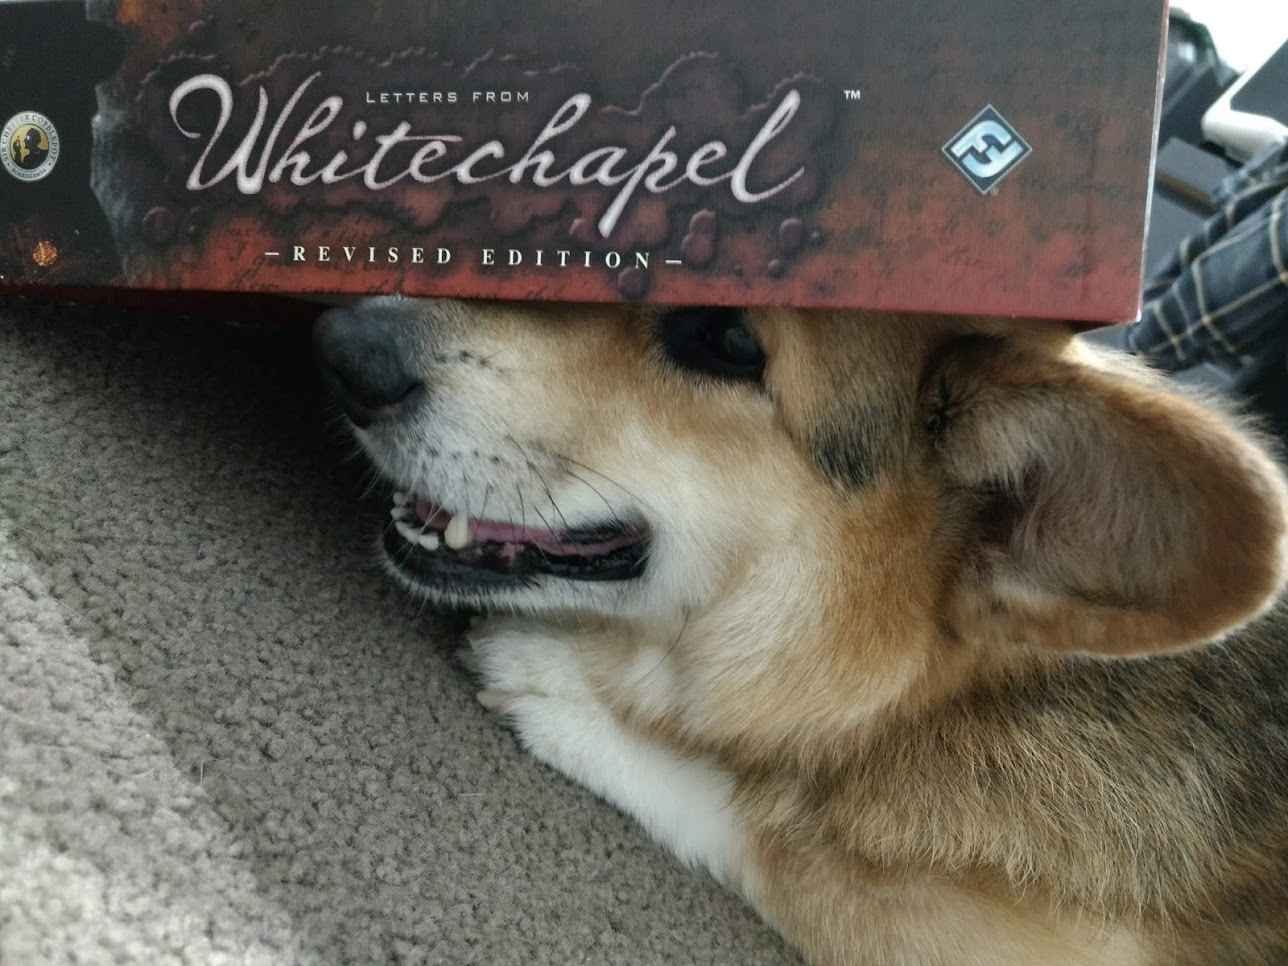 Smiling Corgi with the Letters From Whitechapel box on his head.